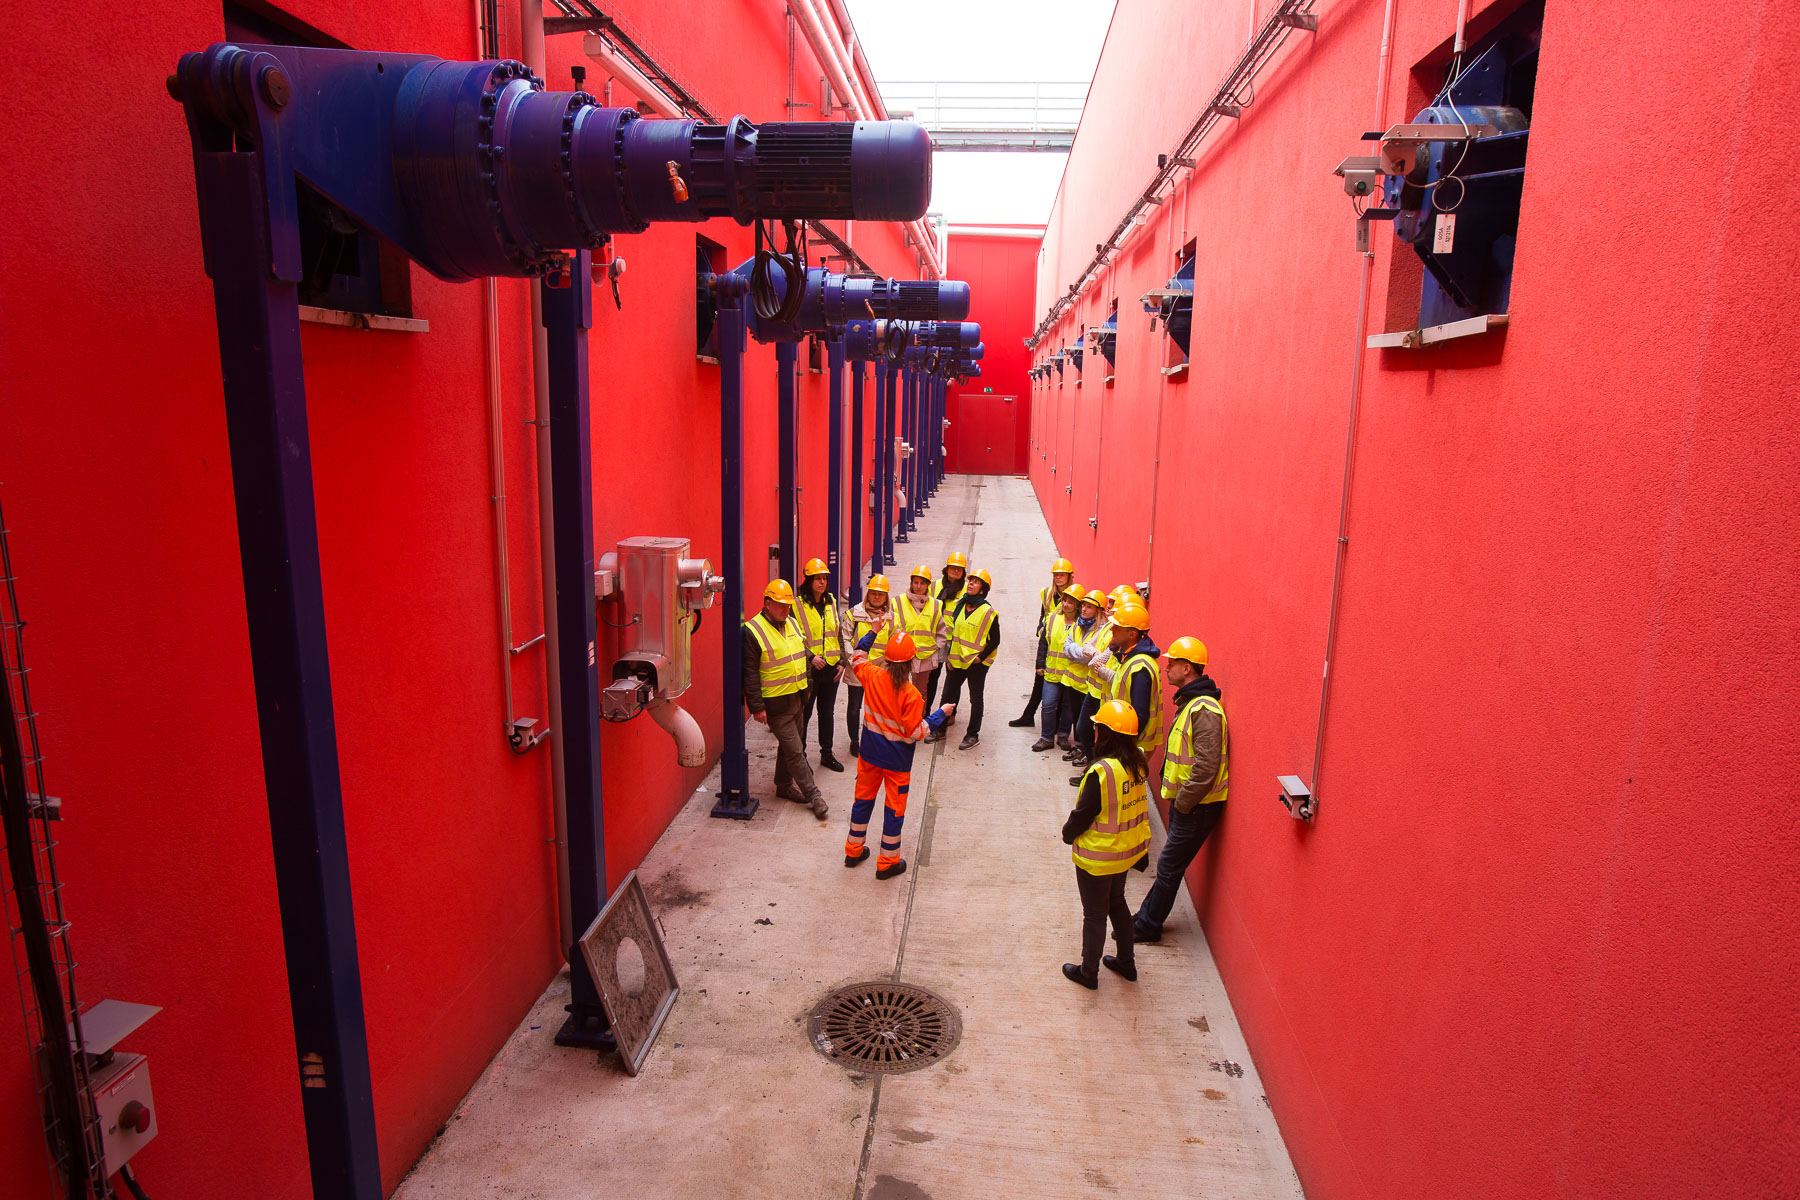 International guests on their zero waste study tour of Slovenia organized by Zero Waste Europe visit the bioreactor at the RCERO Ljubljana mechanical biological treatment plant on May 8, 2019.